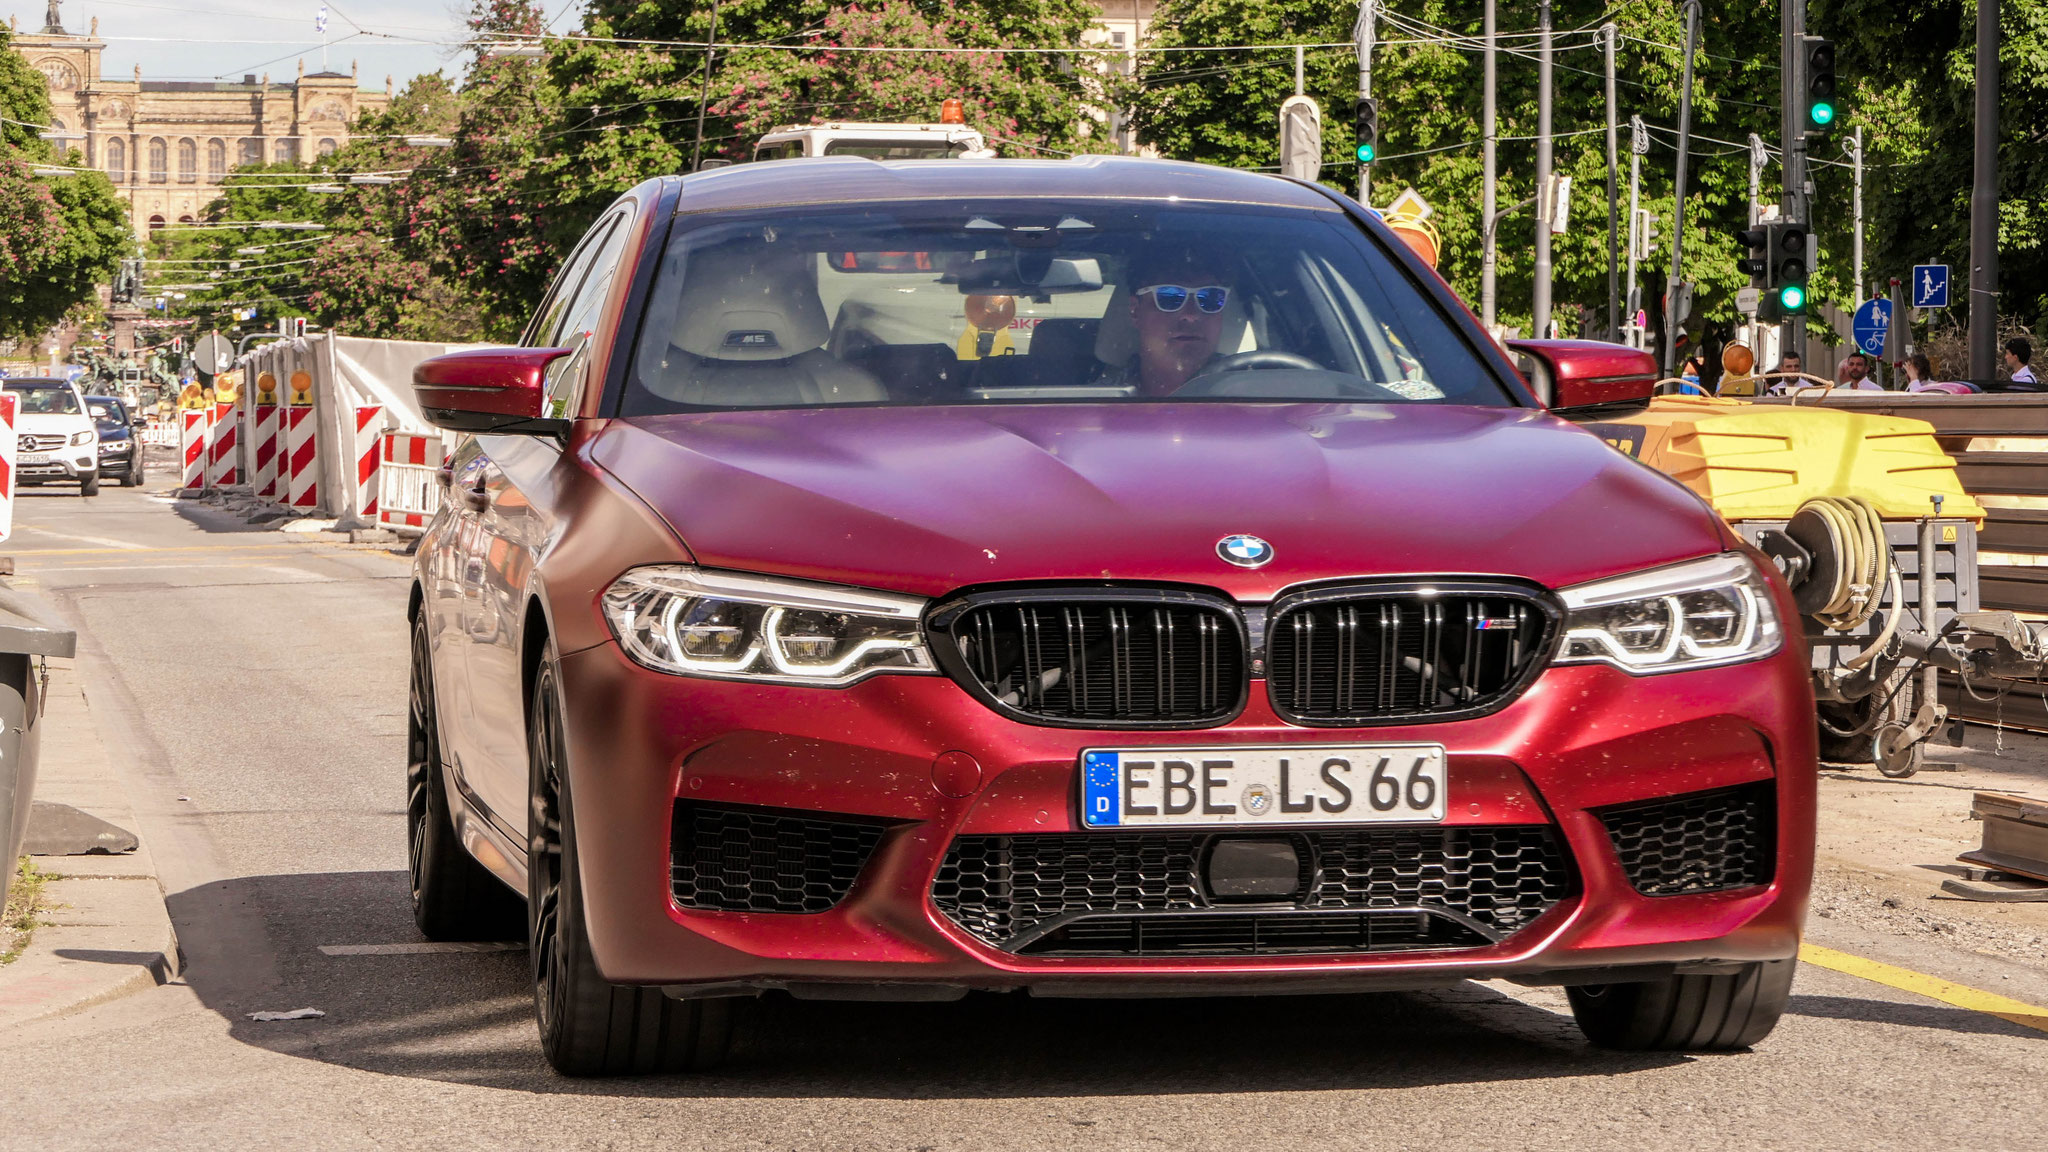 BMW M5 First Edition (1 of 400) - EBE-LS-66